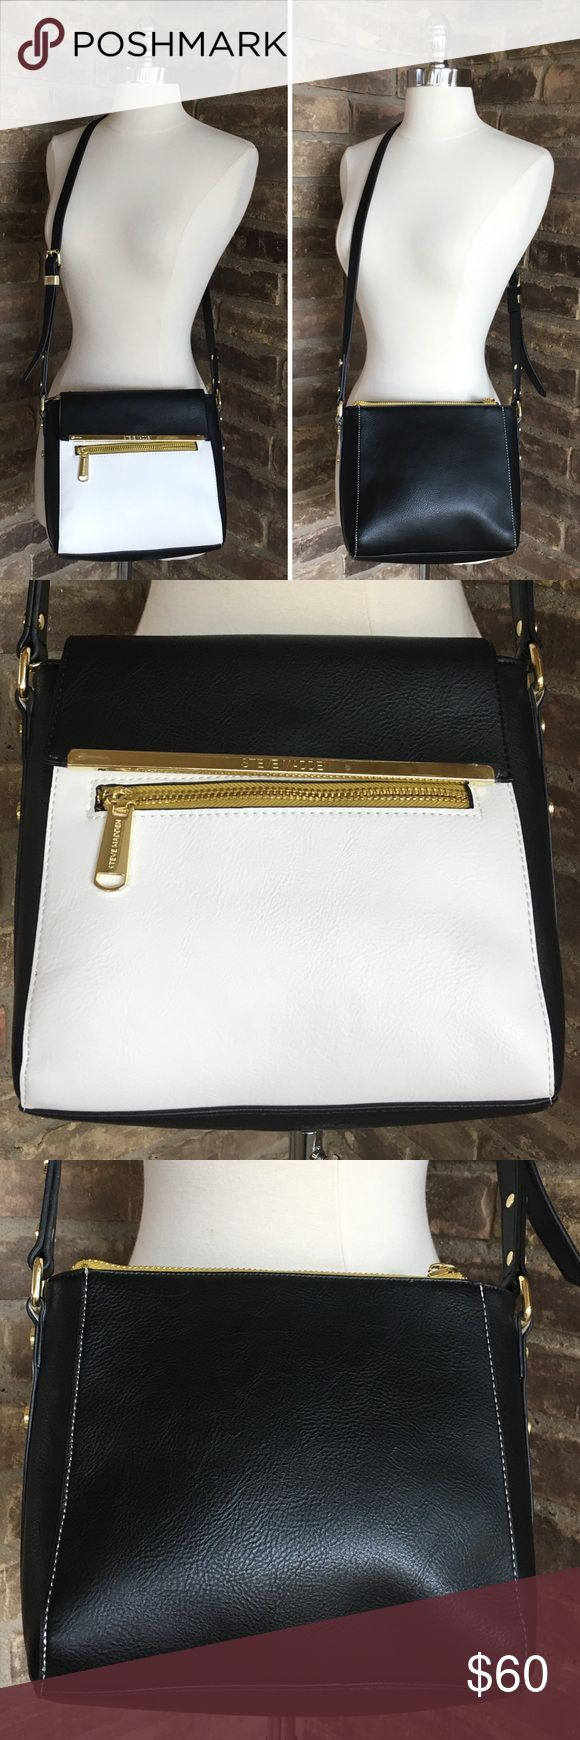 NWOT Steve Madden Bag Black White Gold Crossbody Steve Madden purse black, white & gold crossbody handbag shoulder bag. New Without Tags, plastic is still on some of the hardware, please see photos. Steve Madden Bags Crossbody Bags